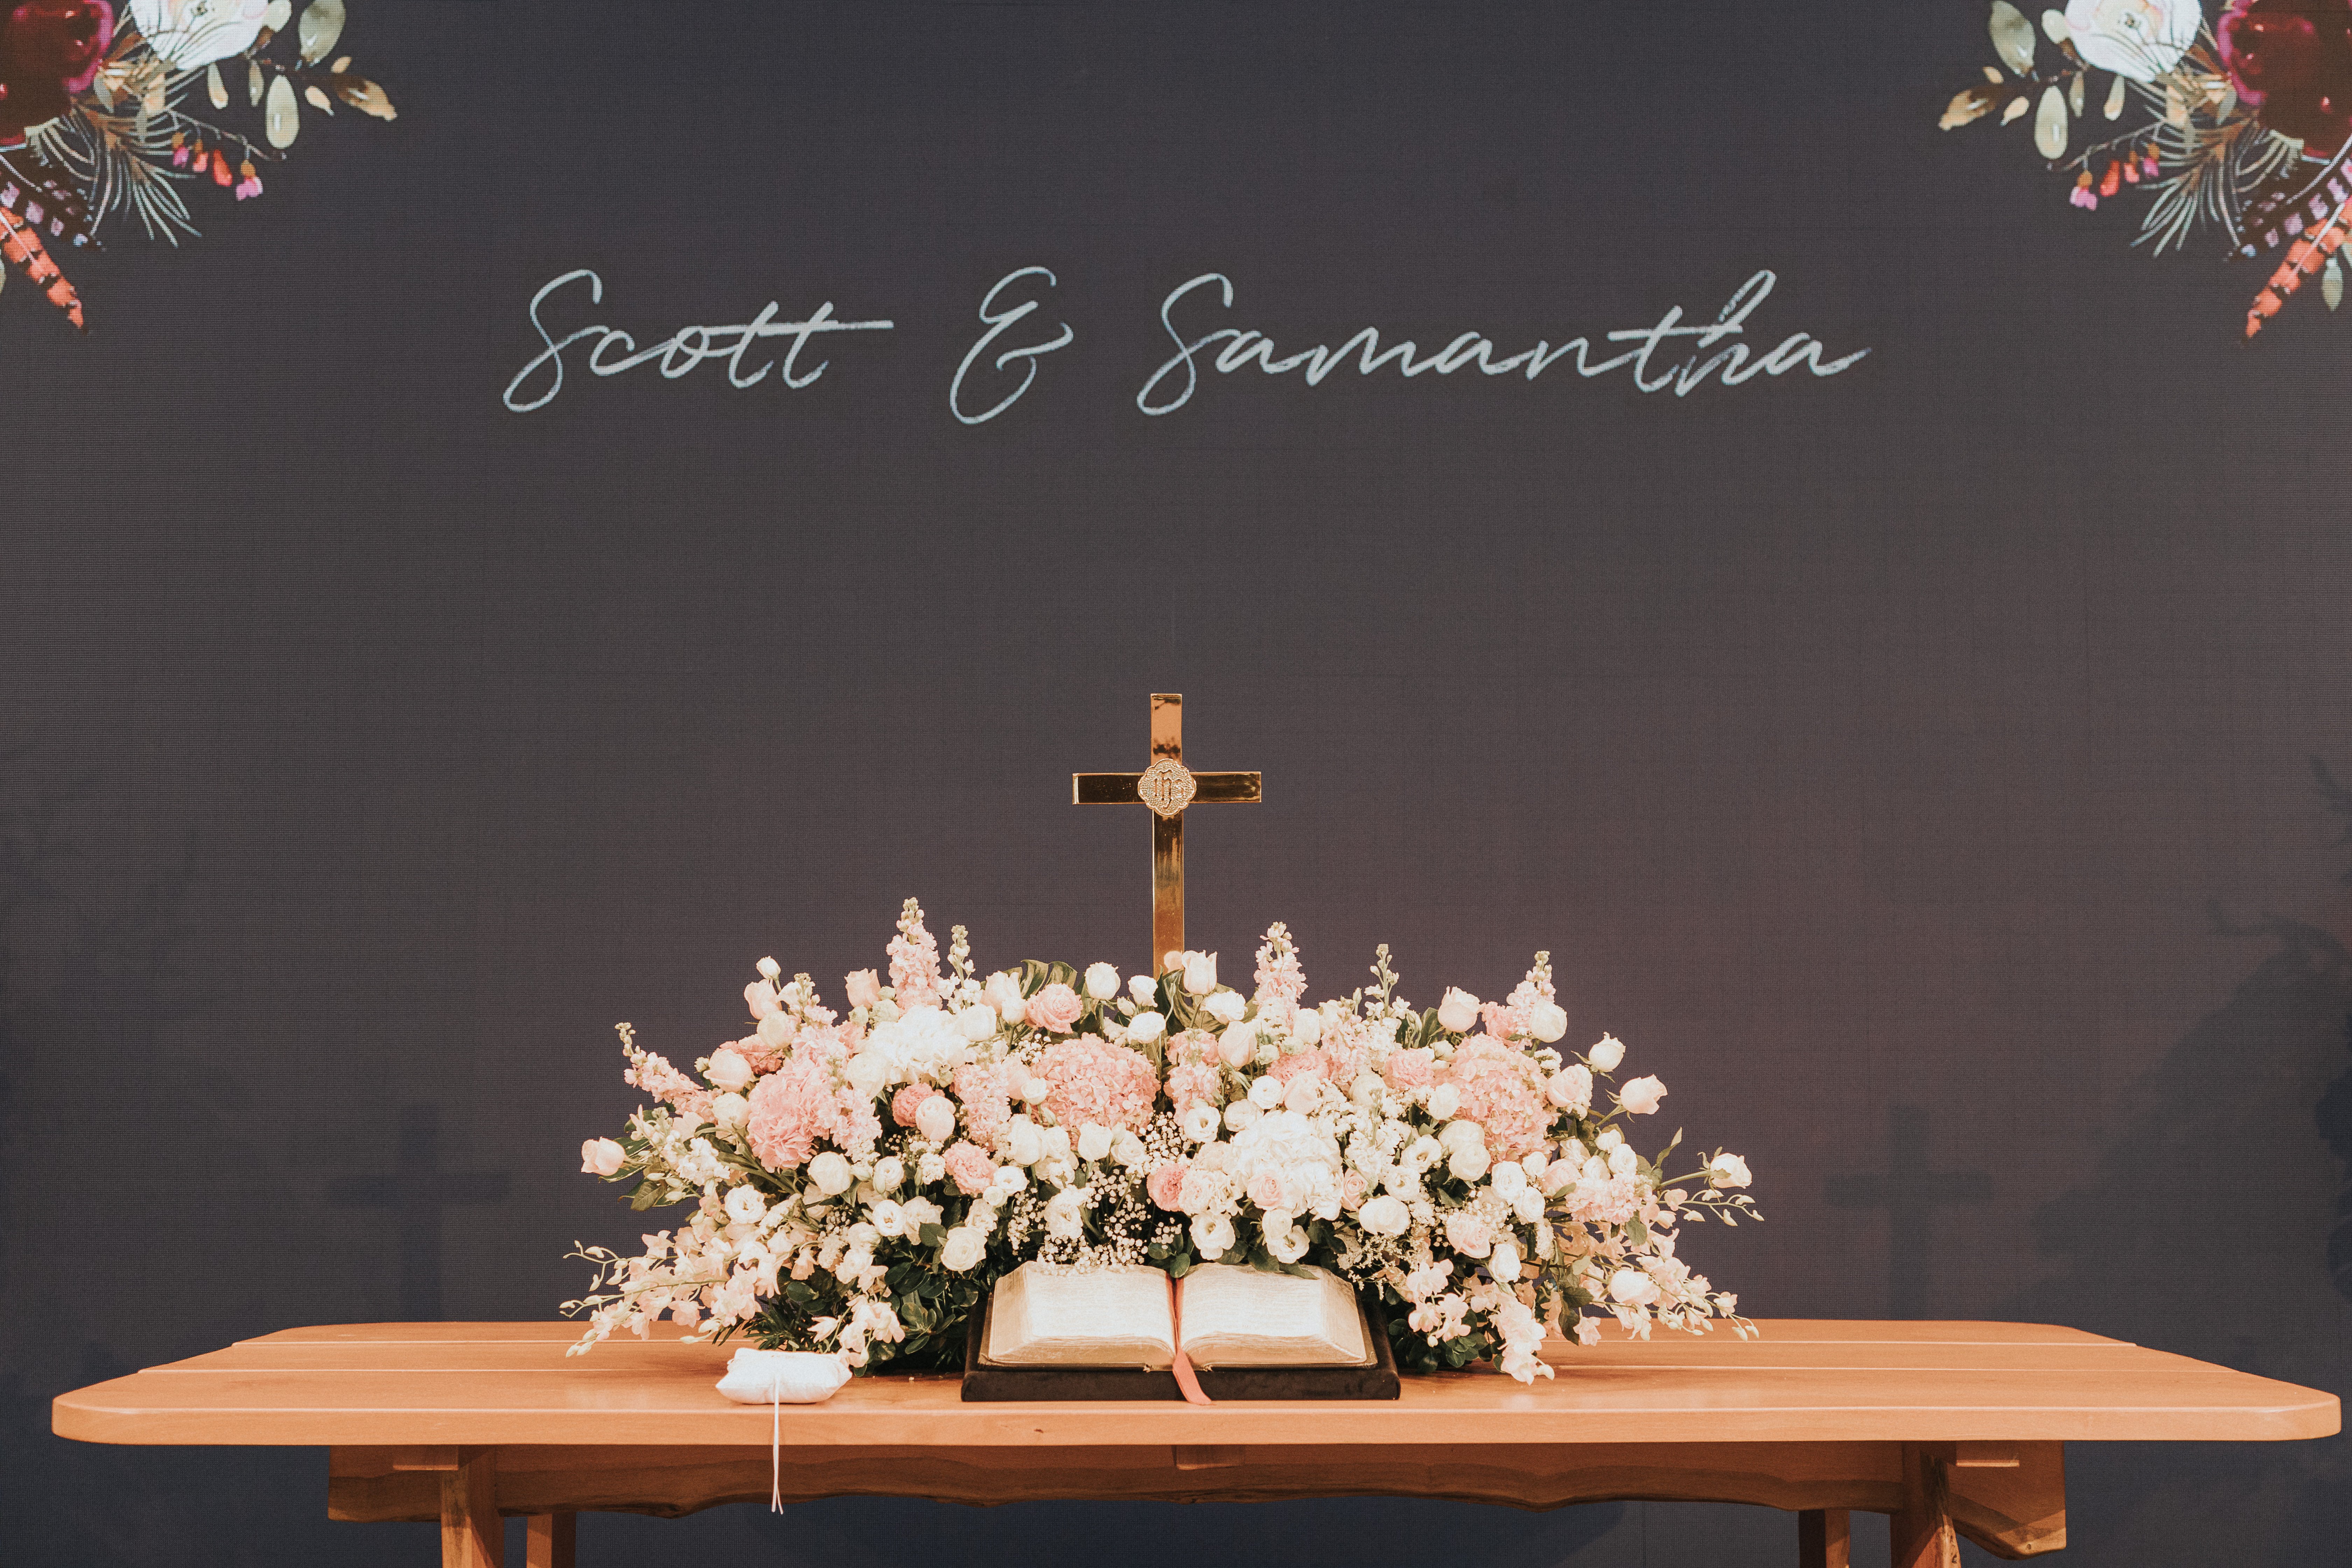 Scott & Samantha